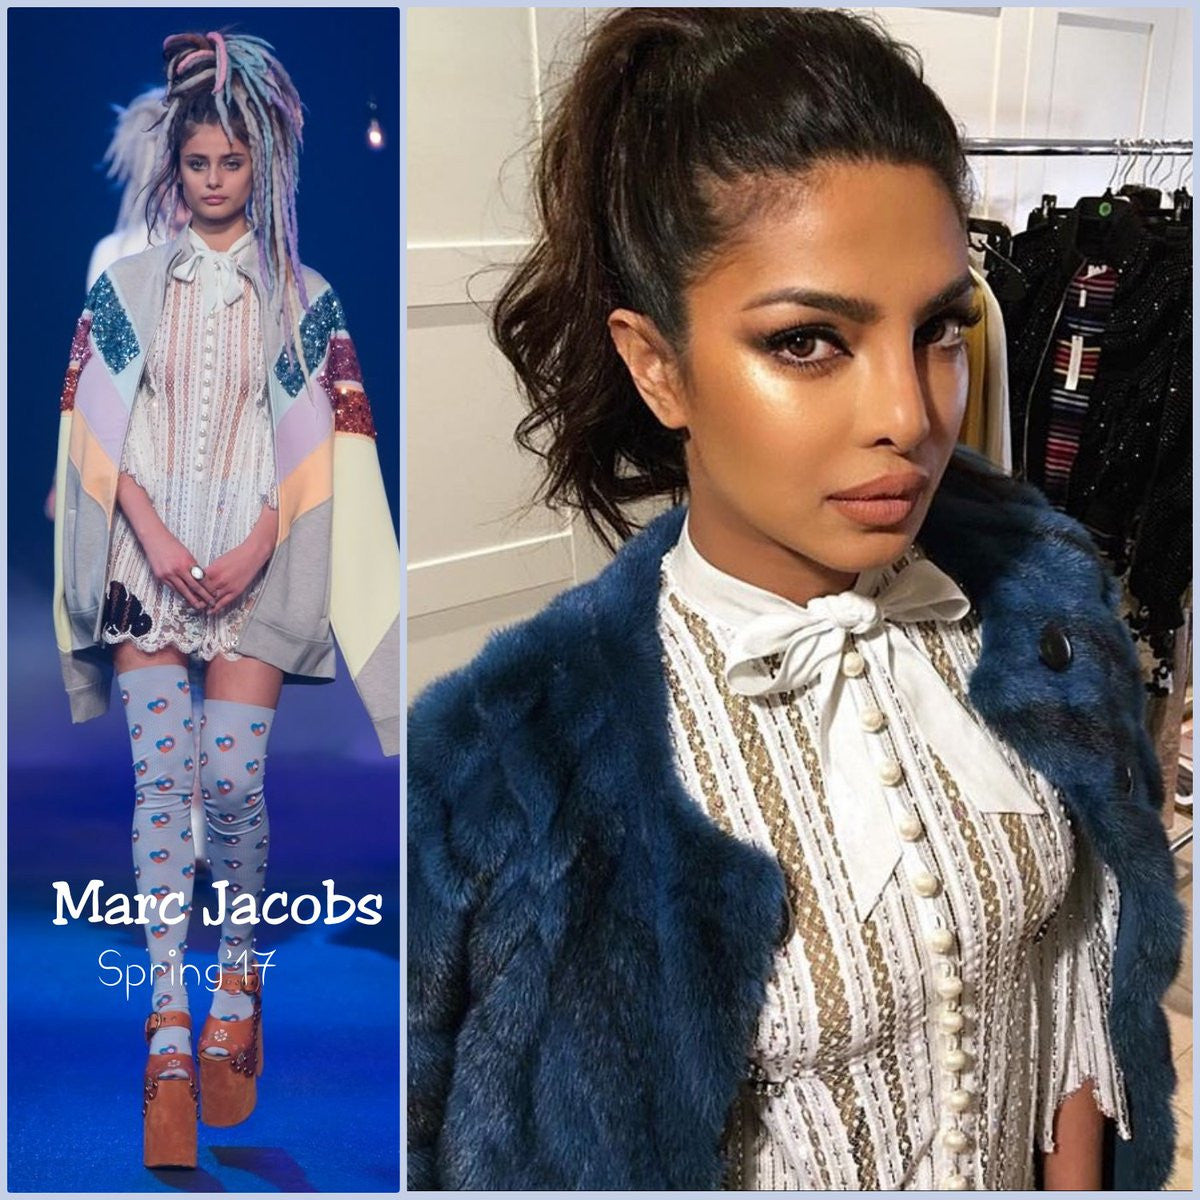 Priyanka Chopra in Marc Jacobs designer dress at New York Fashion Week